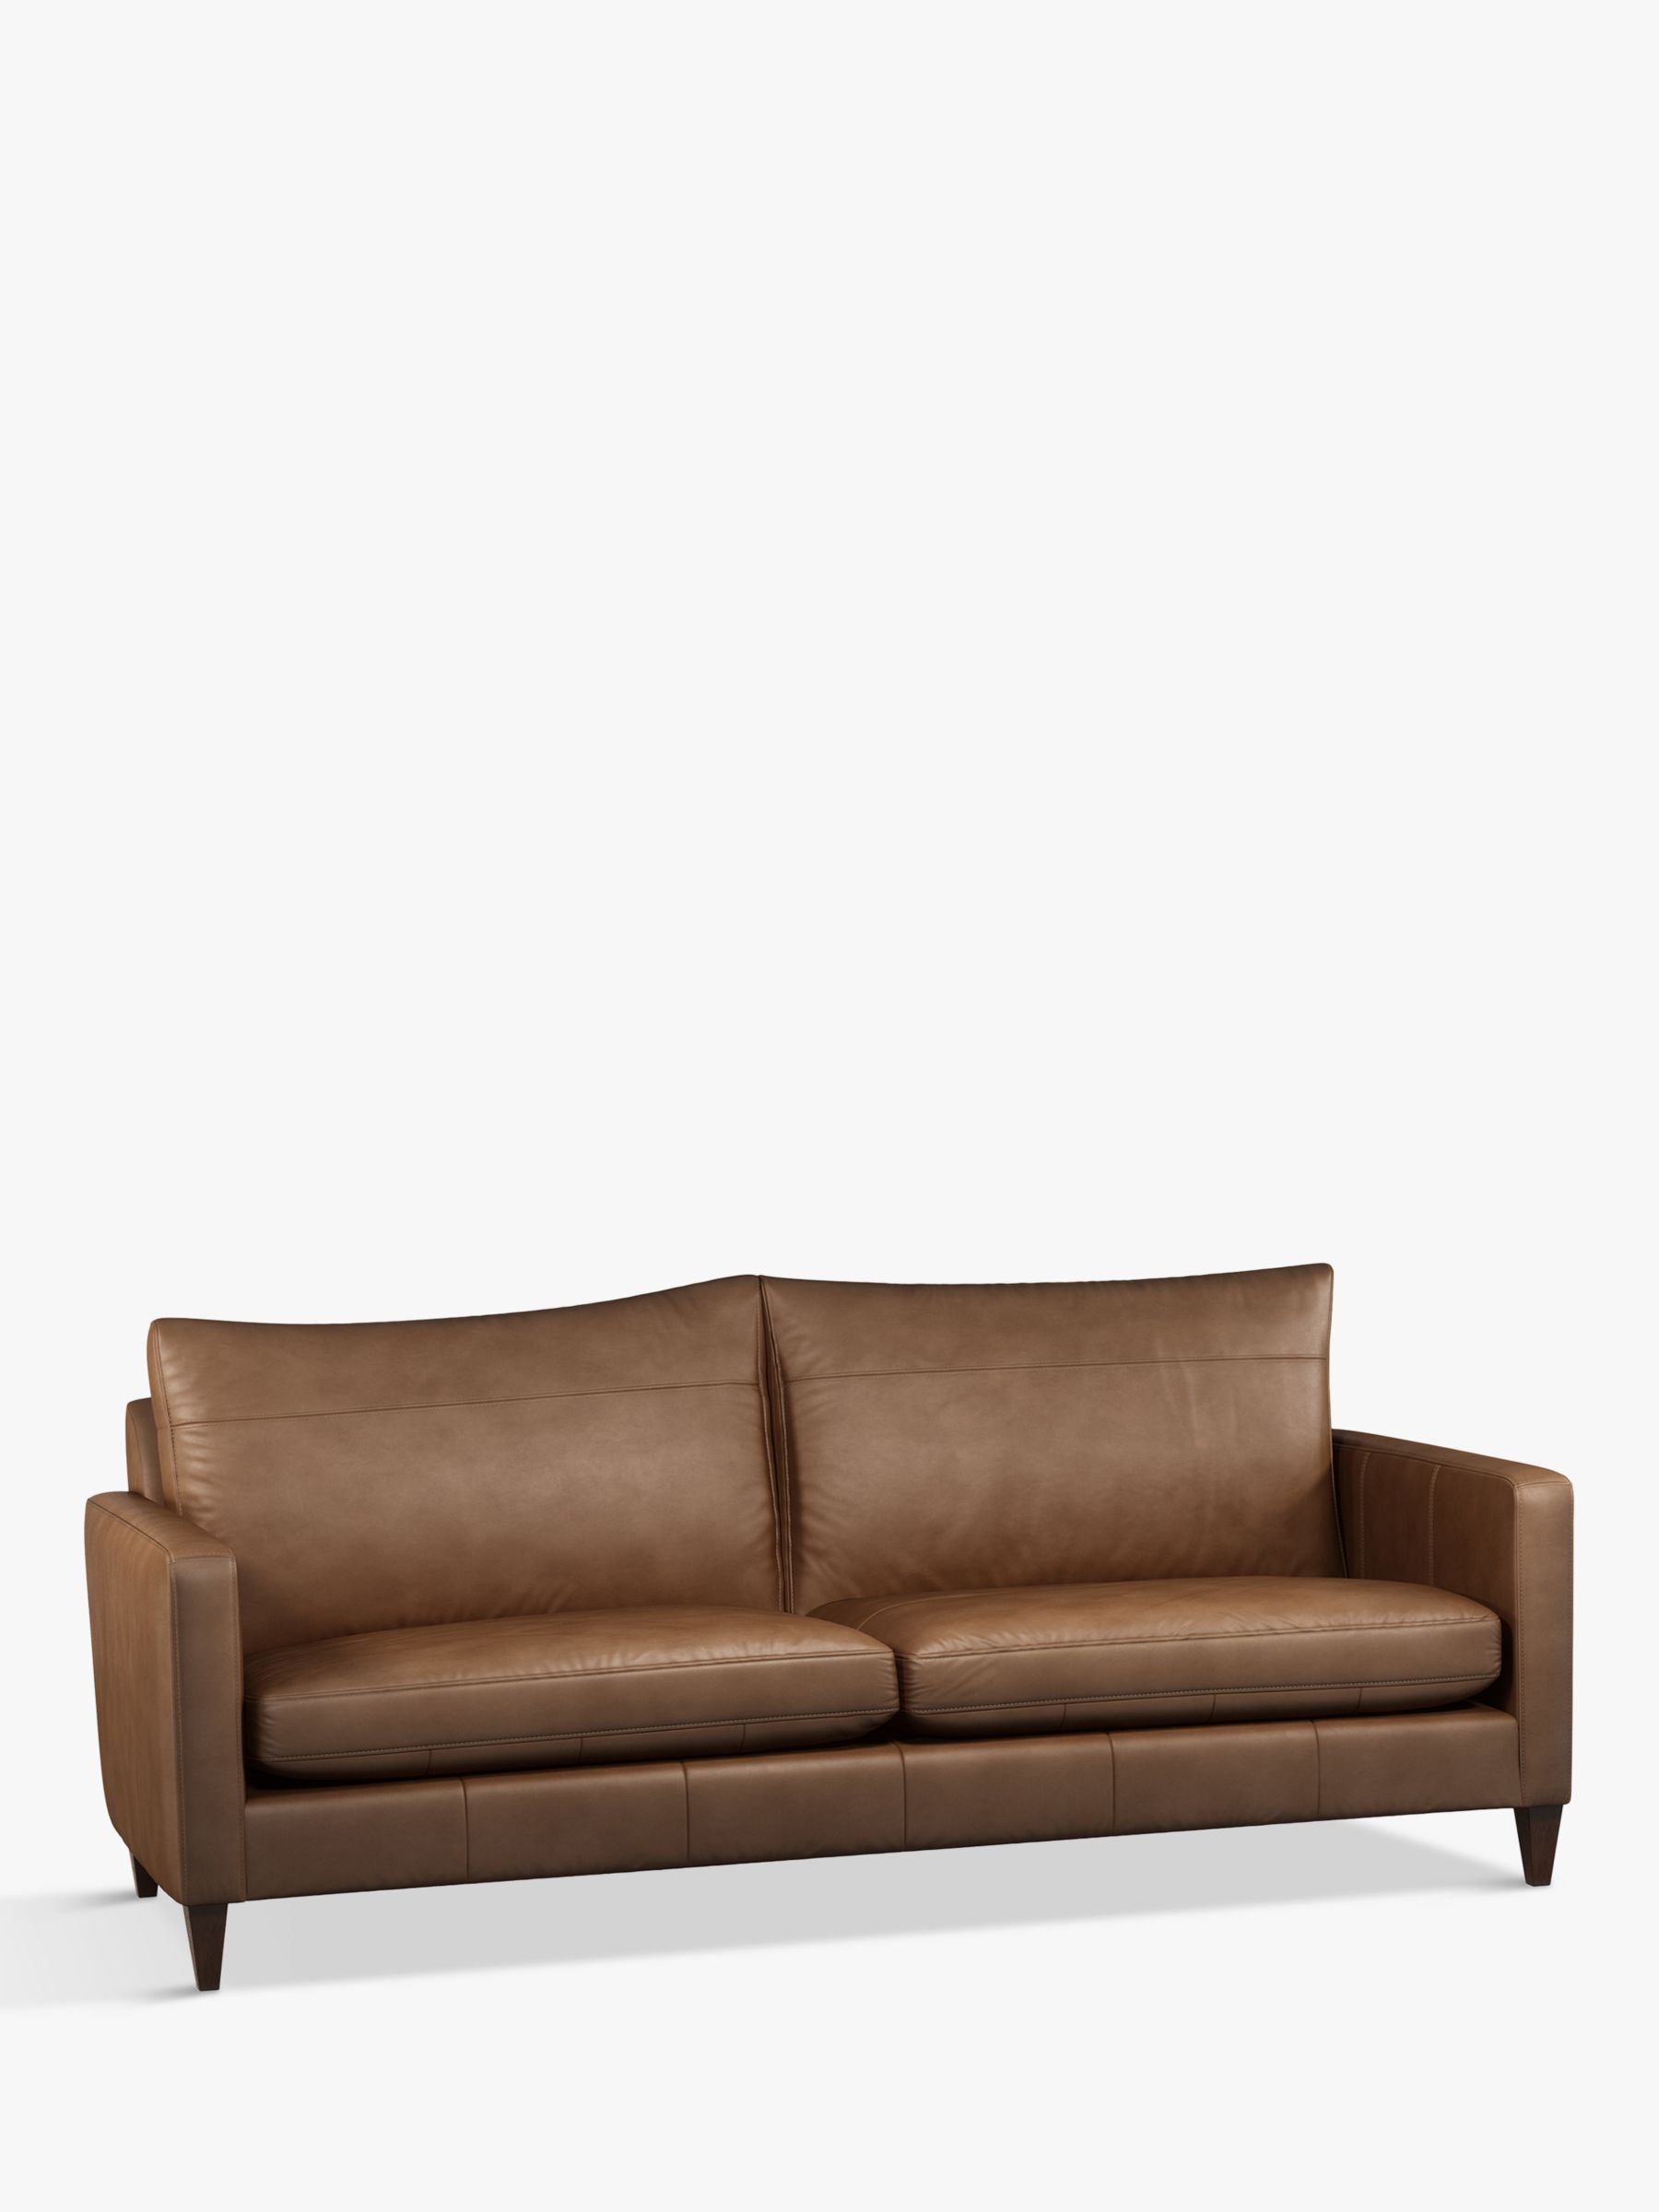 John Lewis & Partners Bailey Grand 4 Seater Leather Sofa, Dark Leg,  Sellvagio Cognac